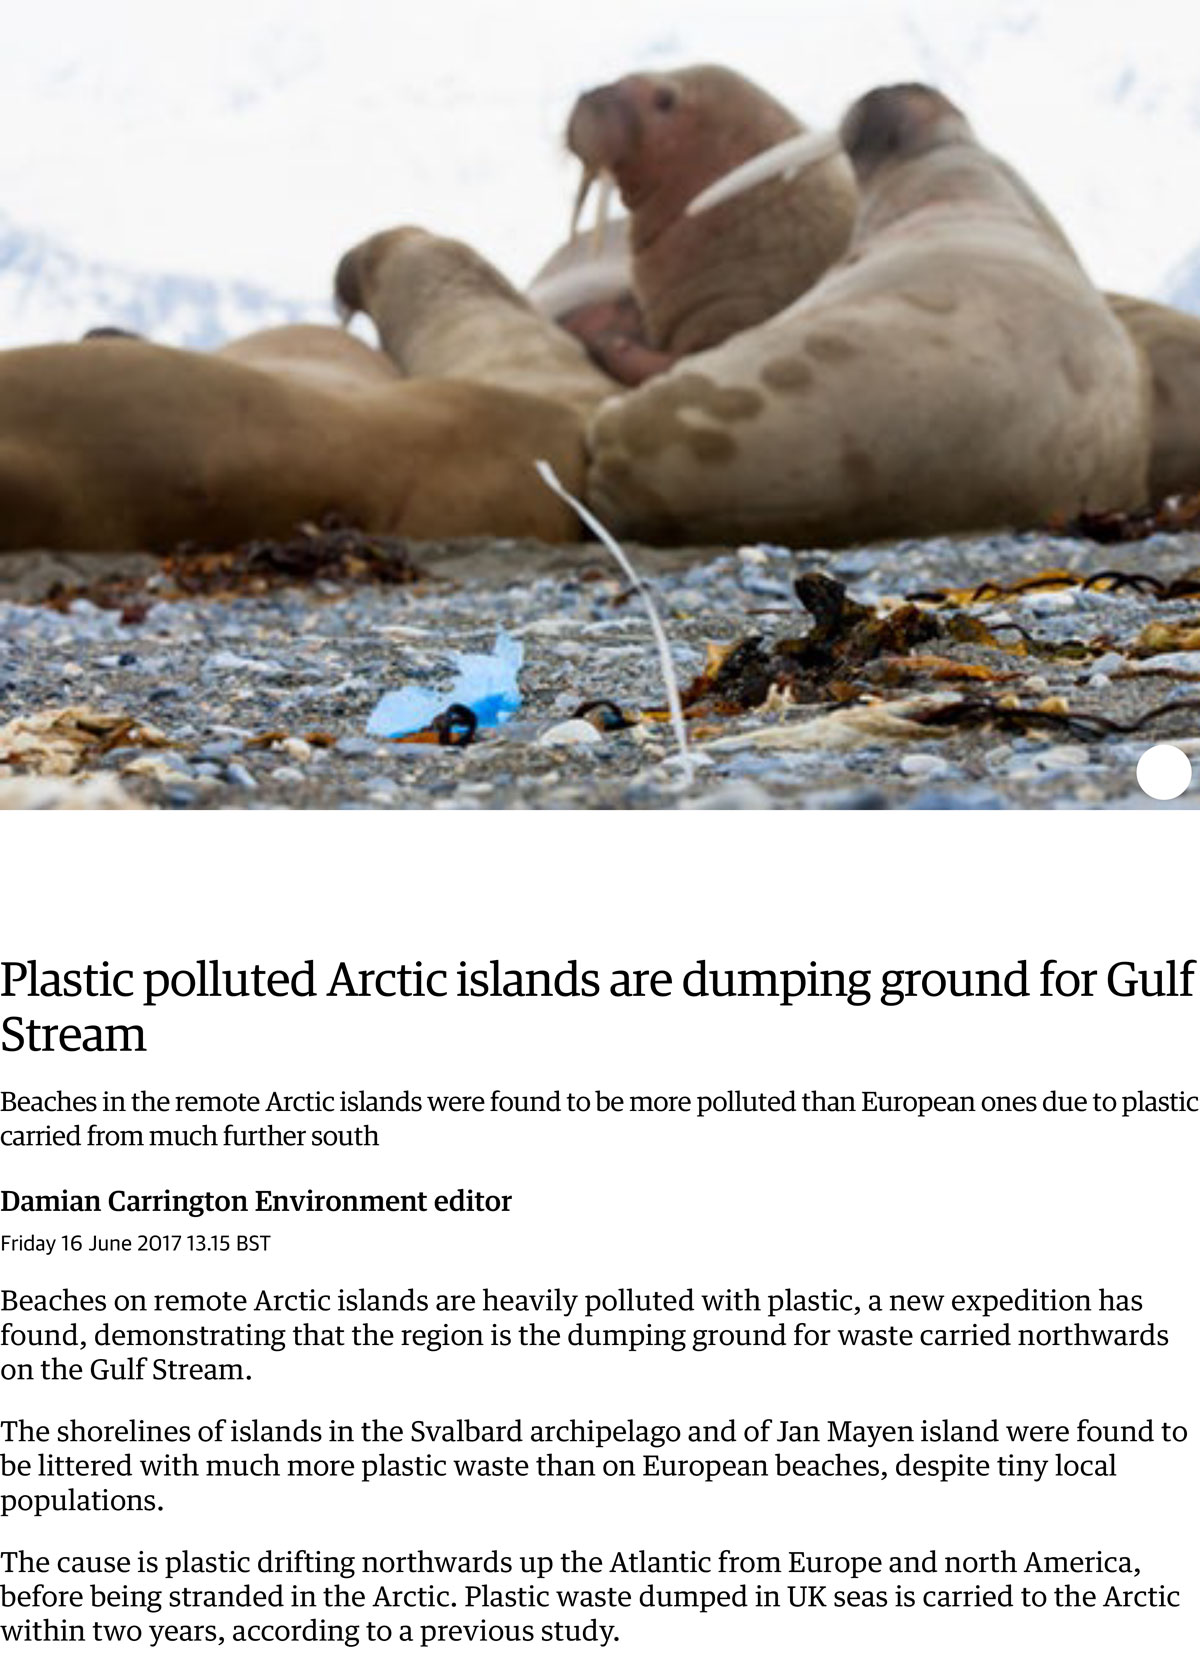 Plastic Polluted Arctic Islands Are Dumping Ground For Gulf Stream